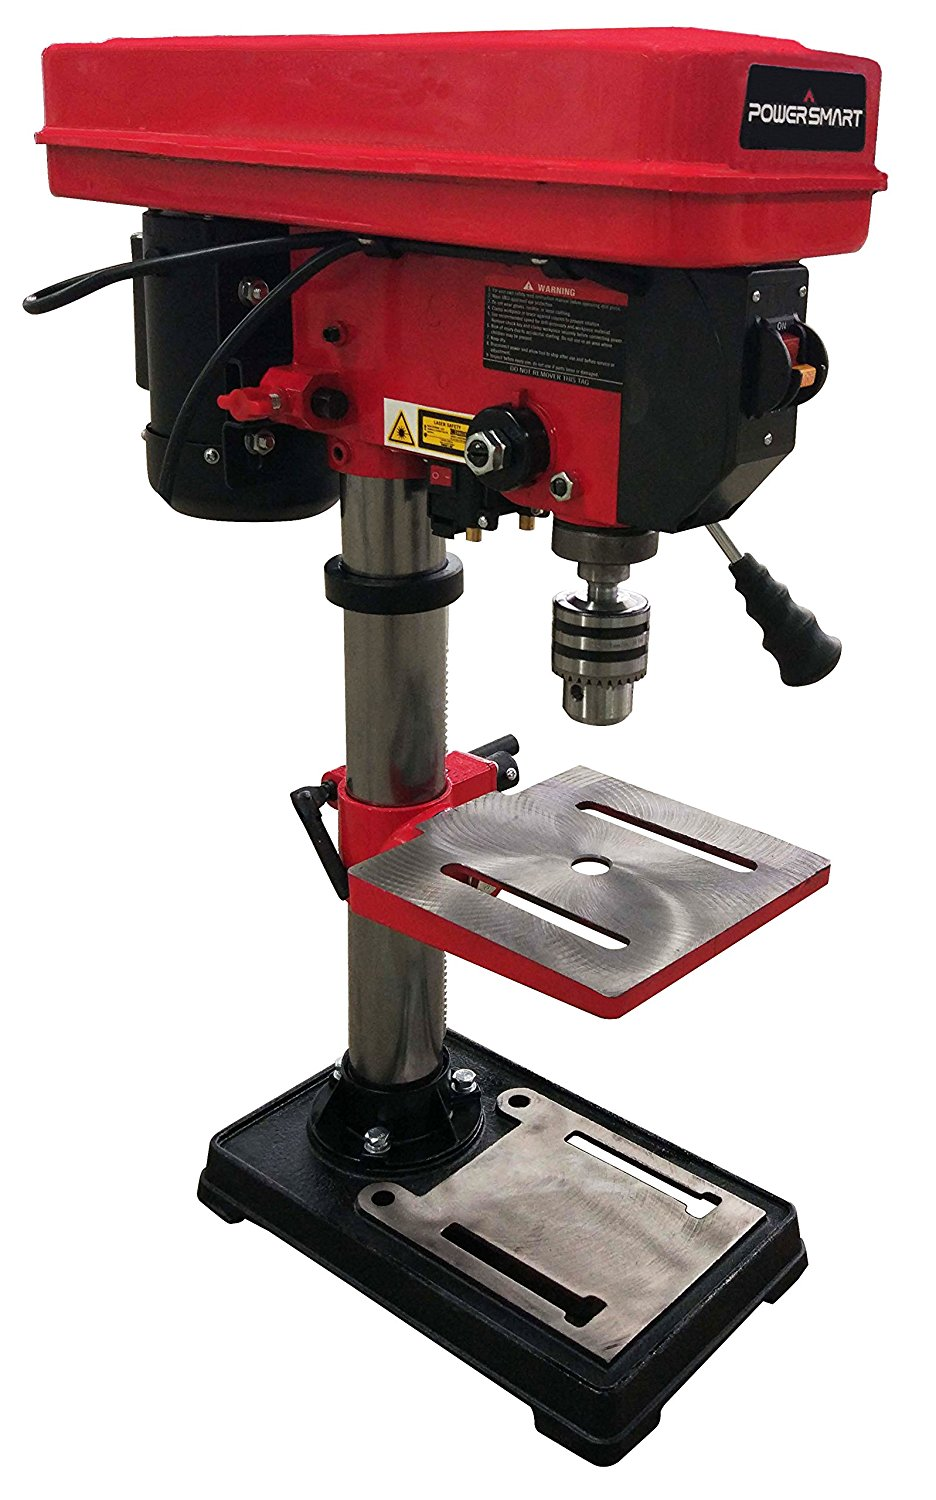 Powersmart Ps310 12 Speed Drill Press With Laser Guide 10 Red Black Speed Drills Drill Drill Press